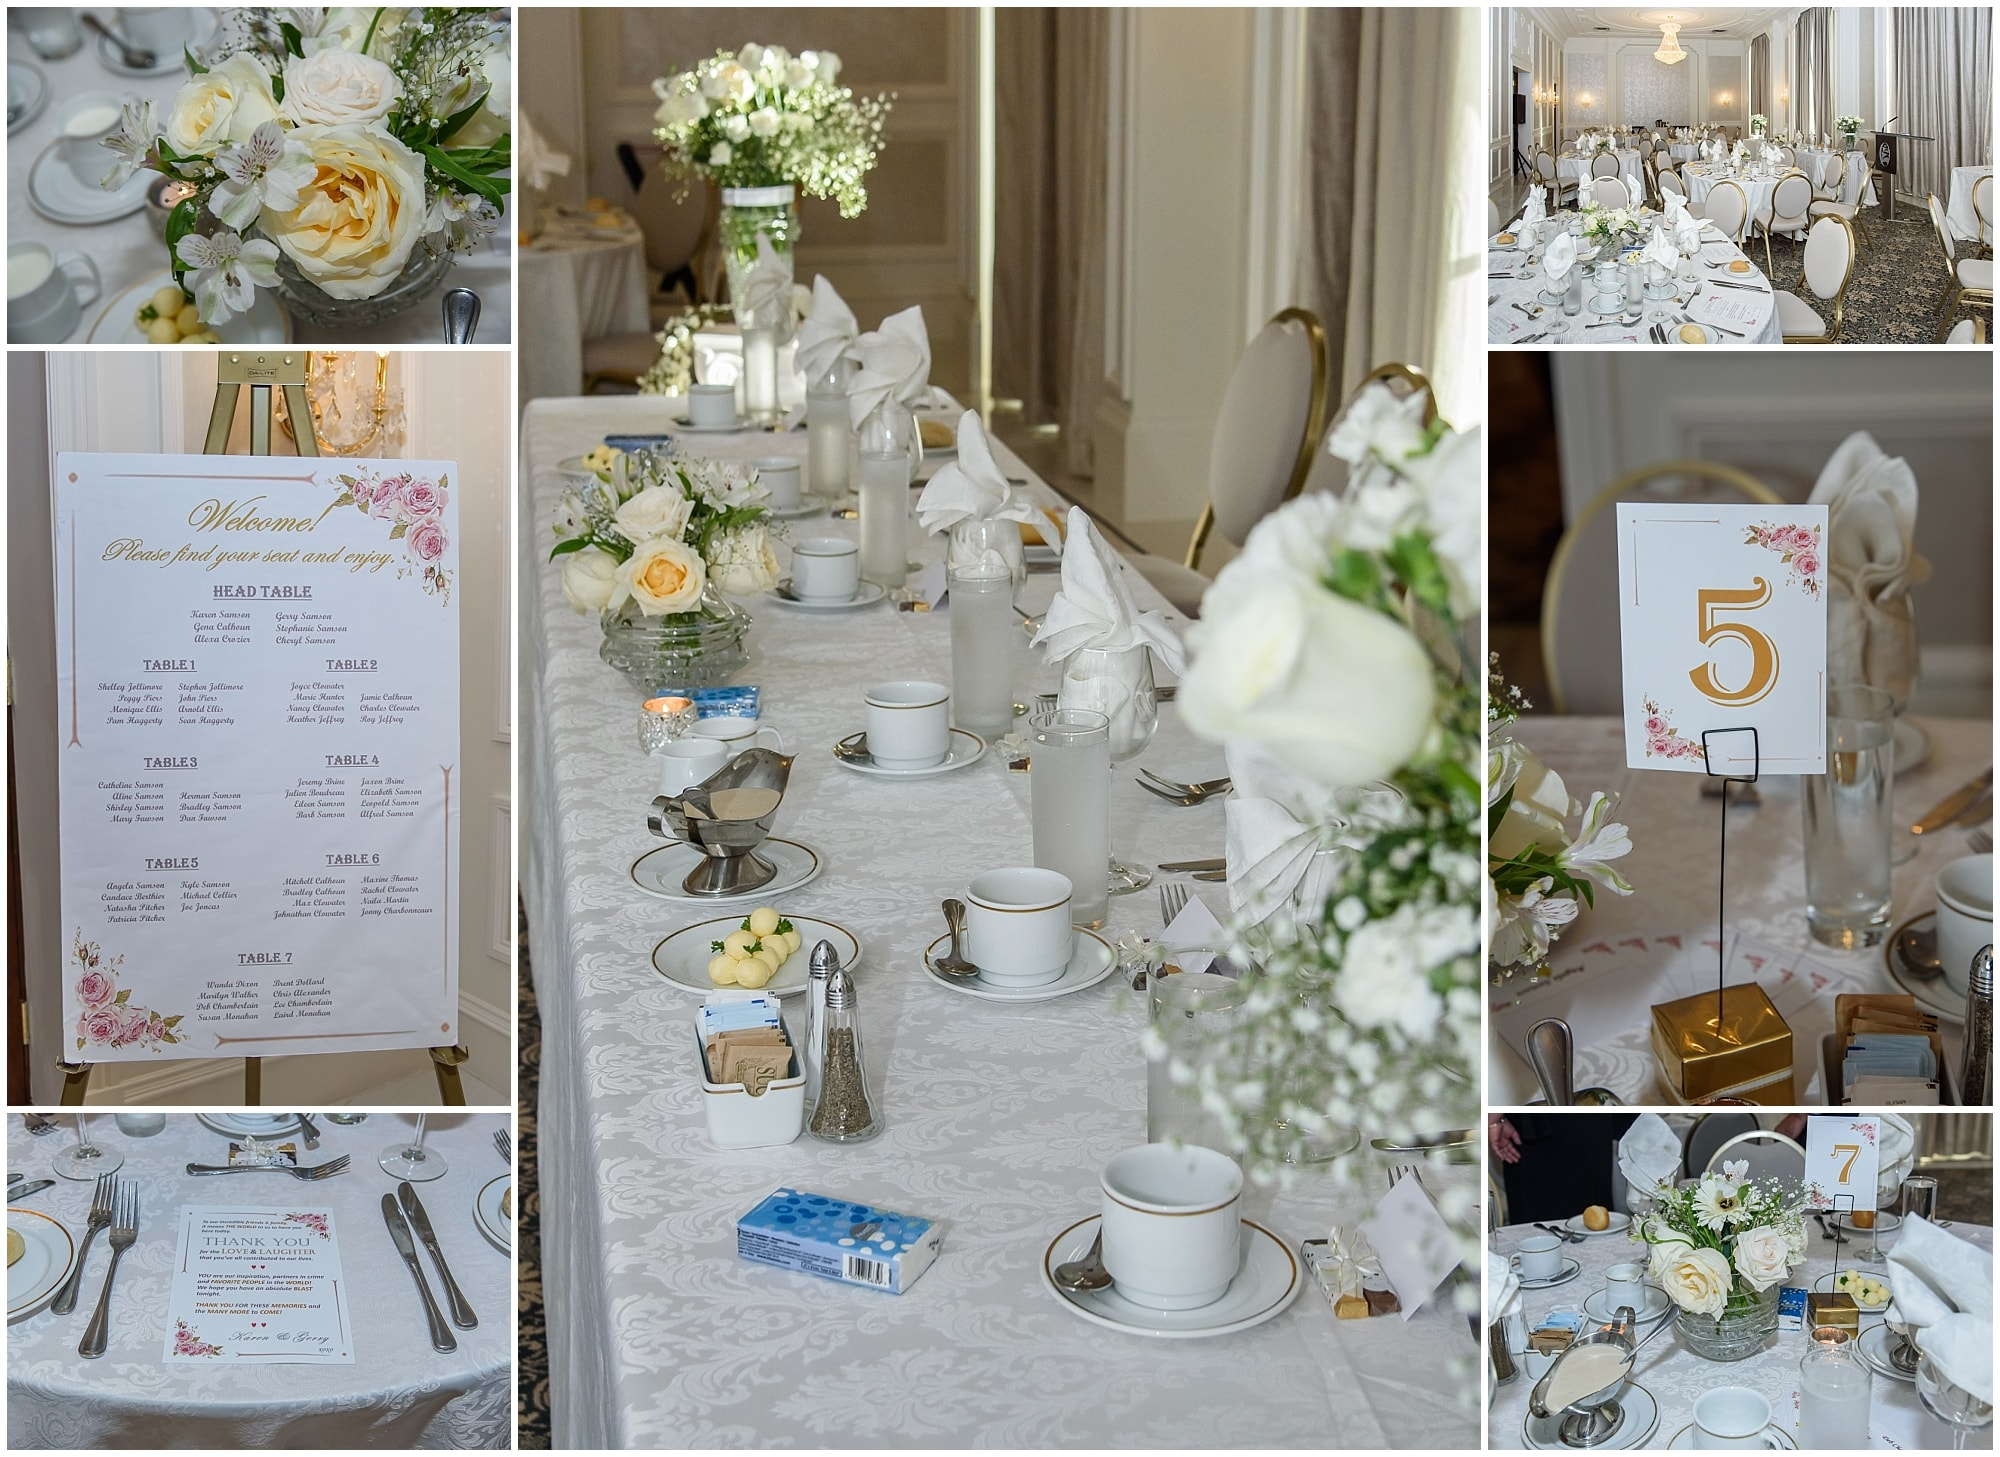 A beautiful stunning wedding reception set up at the Lord Nelson Hotel in Halifax, NS.